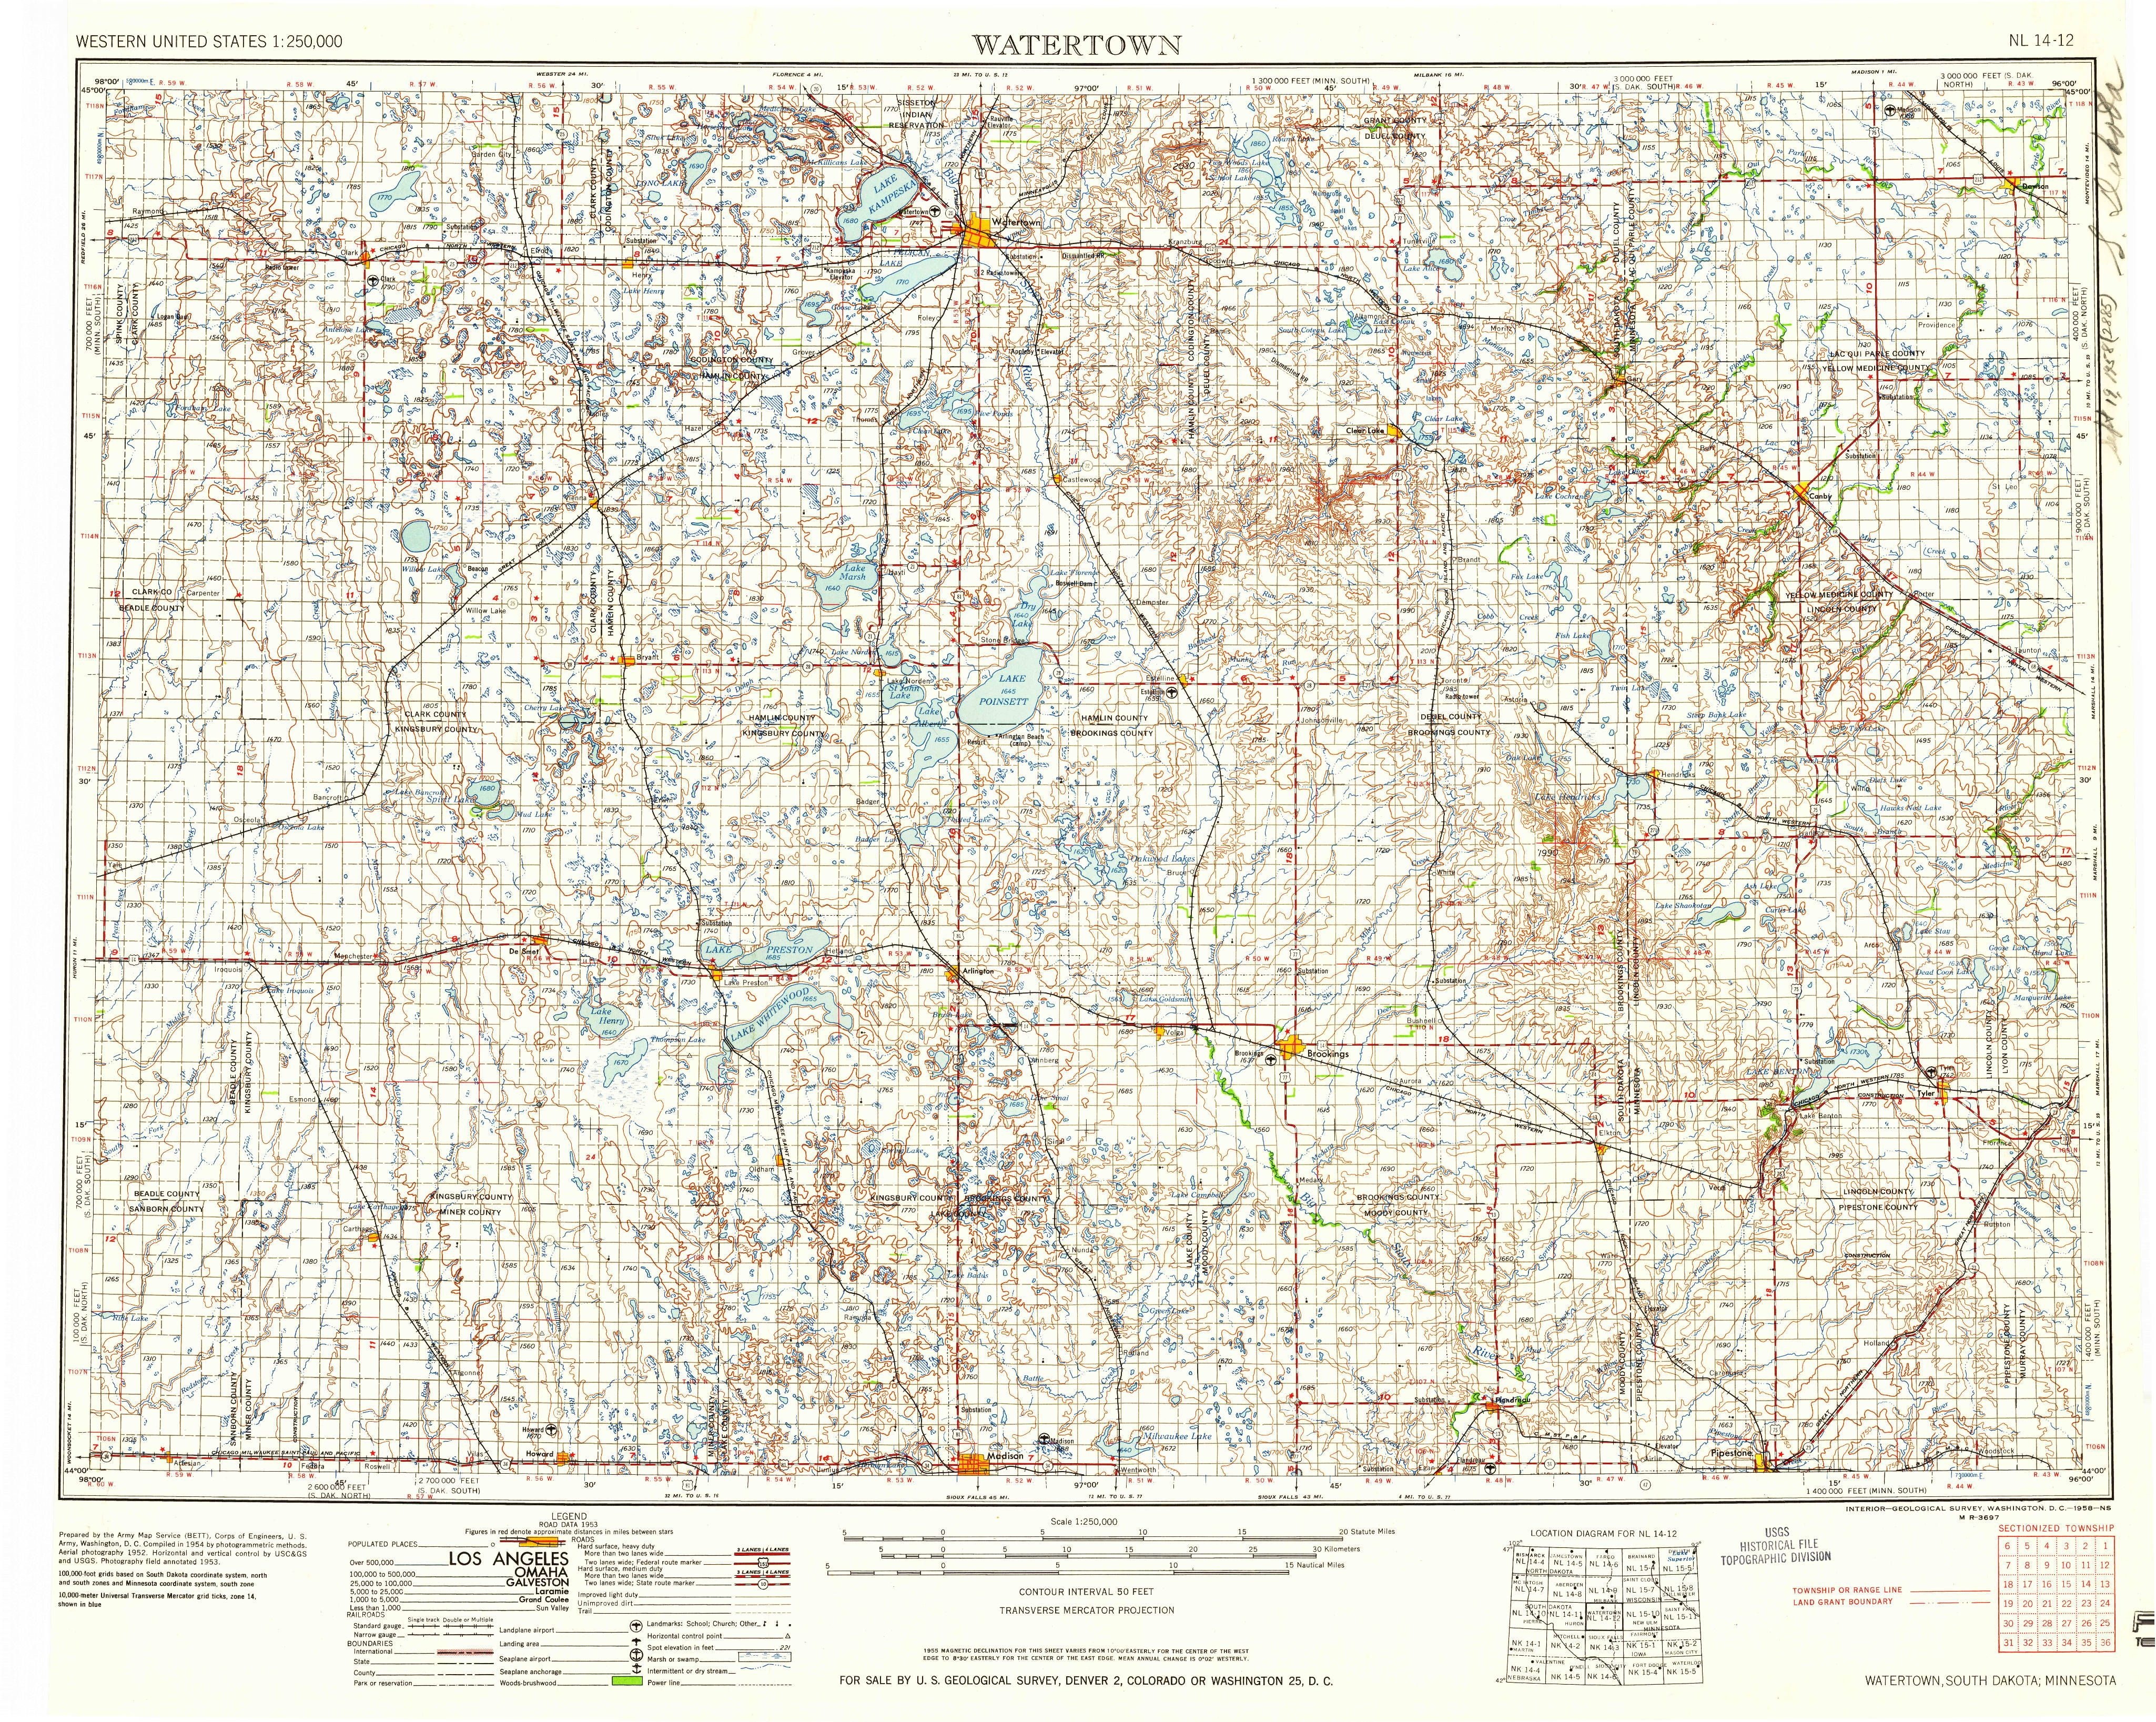 Watertown SD1958 Map from the USGS Historical Topographic Map